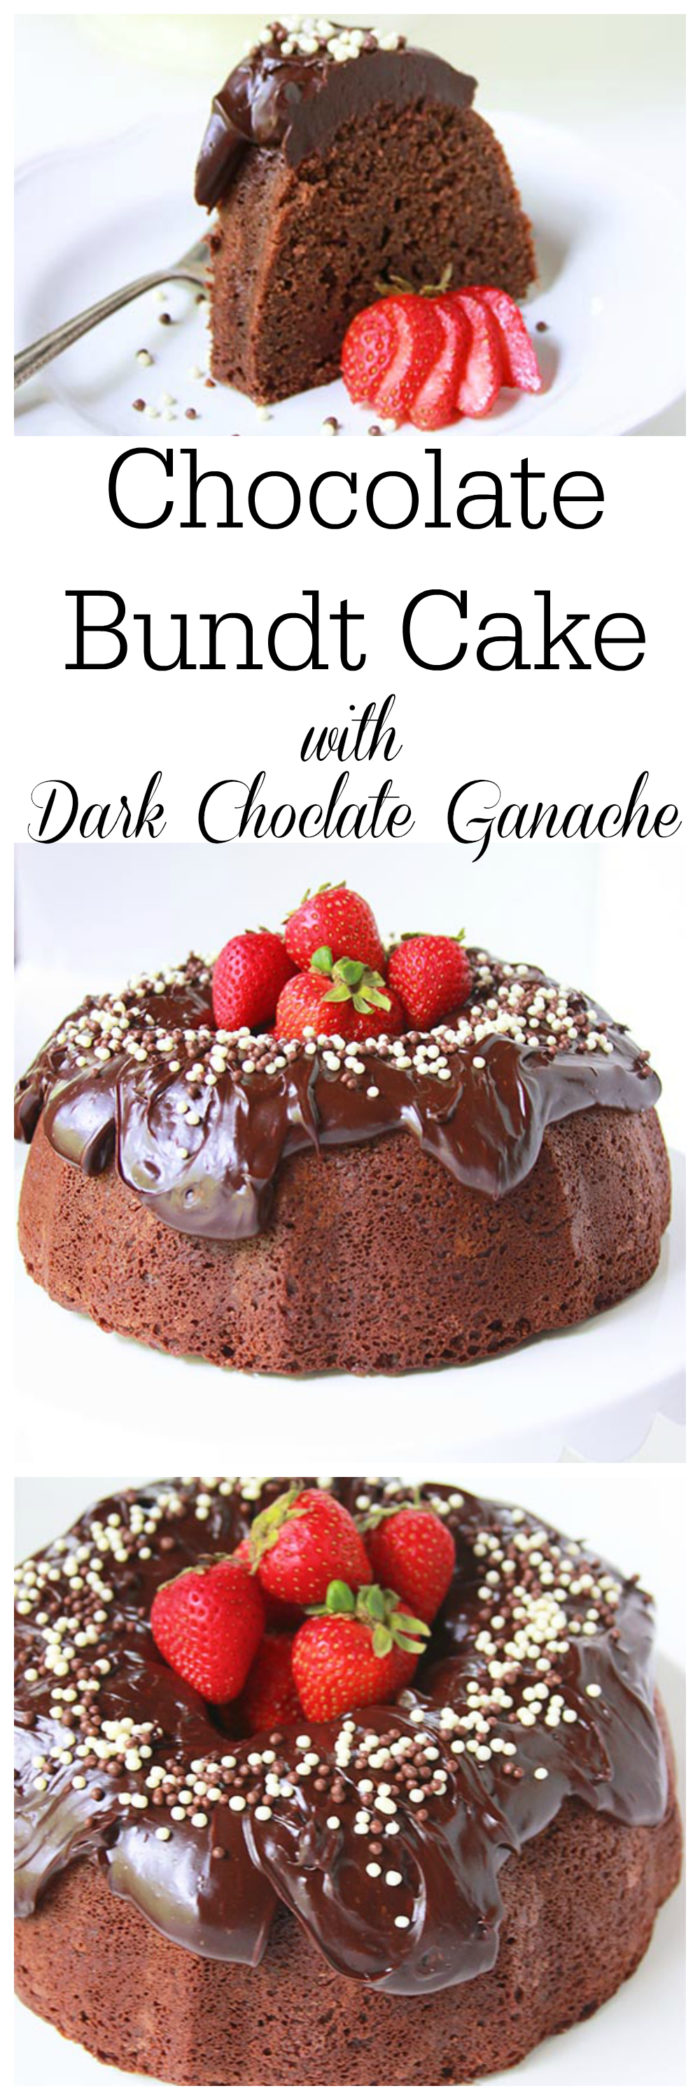 Chocolate Bundt Cake with Dark Chocolate Ganache on www.cookingwithruthie.com is chocolate heaven and every bit as delicious as it is beautiful!